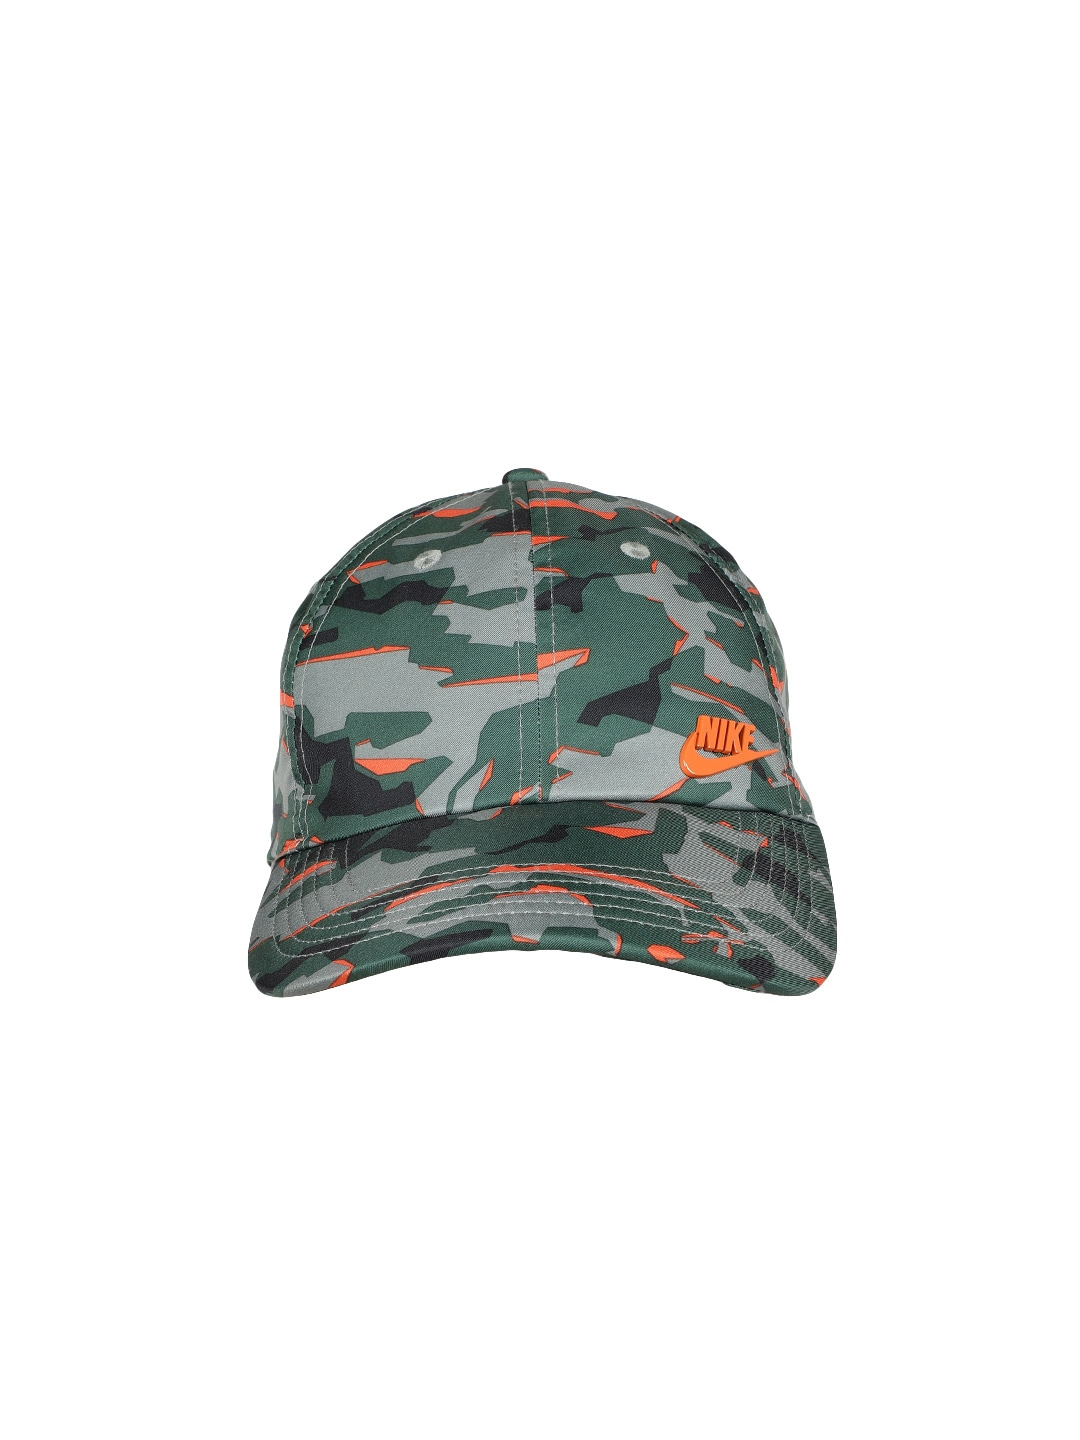 Nike Cap - Buy Nike Caps for Men   Women Online in India  a76e3f3f1945